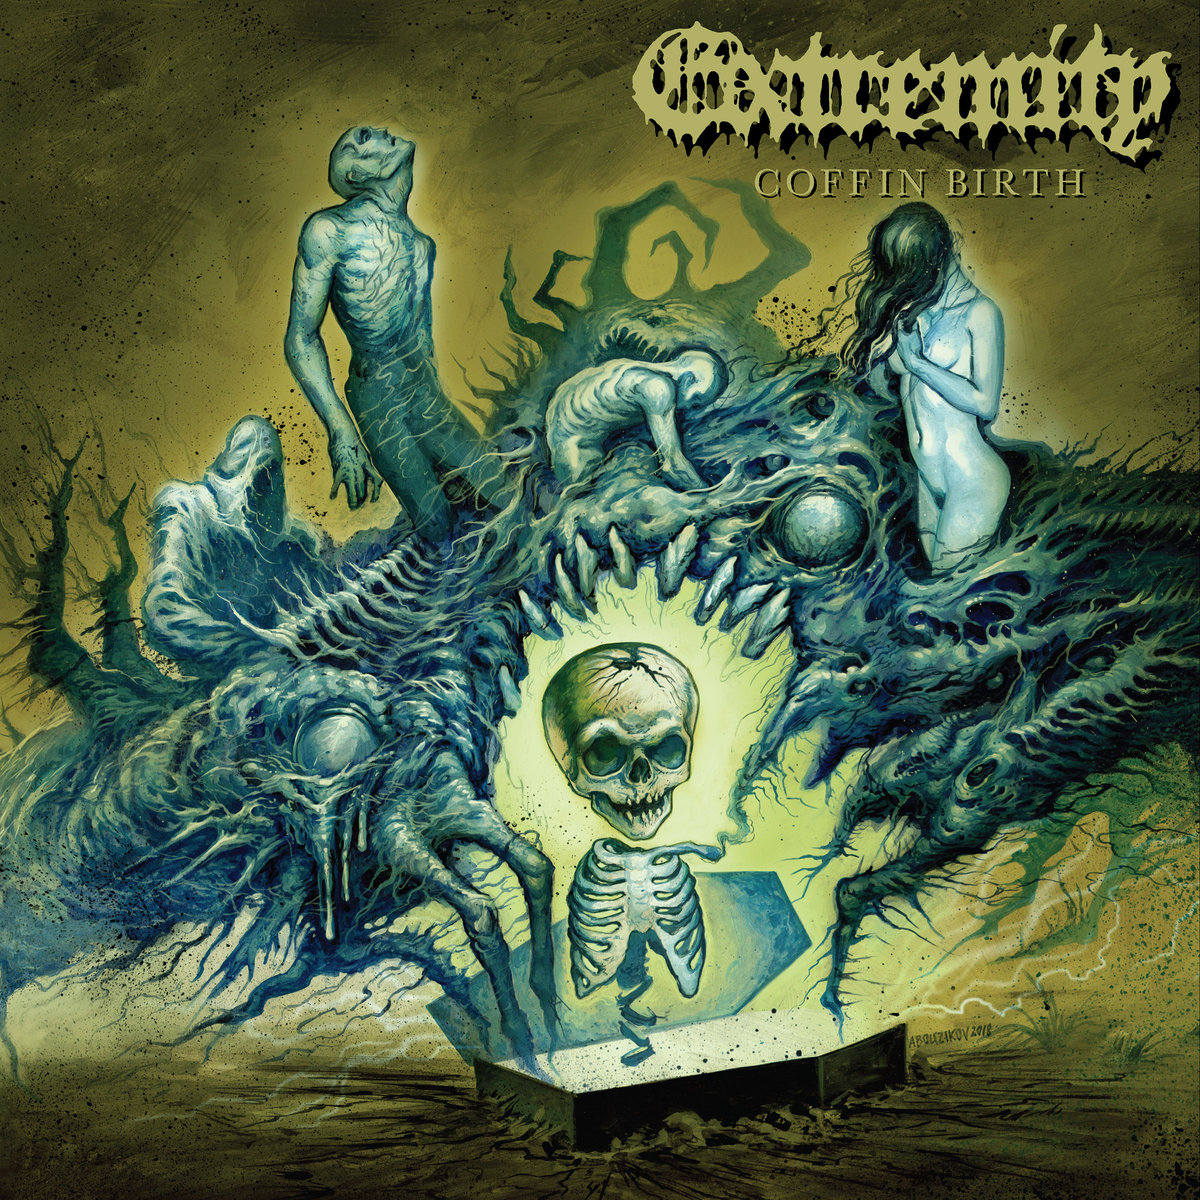 "Coffin Birth by Extremity  - I love me some old school death metal. I love even more when a new band does old school death metal. I love even more than that when a new band comes out and does old school death metal right. This is what Extremity has done. Please forgive the robotic facts I spit out from my death metal machine, but this is true. Coffin Birth by Extremity so awesome old school death metal by a new band done right.    From the album title, album art, and song titles alone; I knew I was in for a delicious death metal delight. ""Coffin Birth""? Awesome. A dead baby skeleton emerging from a coffin surrounded by abstract abyss dwelling undead creatures and/or anamorphic body parts and such? Double awesome. Insightful titles to their pieces such as ""A Million Witches"" and ""For The Want of a Nail""? Sign me right up. Upon further inspection, they are a southern Californian death metal sort of underground supergroup with a female bassist? Say absolutely no more. But, wait, there is more! This debut full length is brought to us by one of absolute favorite, and unashamedly proud Pittsburgh based, record label - 20 Buck Spin. AND ON TOP OF THAT, upon further inspection, this is a concept record. A death metal. Concept. Record. How many things that I love can be packed into this undead motherfucker of a coffin fetus? Just the fact that this record is supposed to sound like it takes place in a coffin (it does) and its a story about an alien father impregnating a dead woman and giving birth to said undead alien fetus inside said coffin, and this record is essentially the soundtrack to that. Spoiler alert: they nail it (no pun intended) .I loved this record before hearing a single lethal injecting millisecond of it. Now, to be realistic, I probably shouldn't get my hopes up this much in case the actual music itself is disappointing, right? To that I say, fair point. But, I have the mentality of a six year old and will damn well get over excited at a record called Coffin Birth no matter what kind of logic you throw at me and GODDAMNIT I WASN'T DISAPPOINTED. Maybe next time, you logical fucks? Now that I'm done defending myself against a mob of logical Garth Brooks listening adults I've concocted in the depths of my imagination and projected upon you all as reality to justify my position in said death metal record, I digress and we'll get to the music. Thank you for your time and attention.    Extremity, being the sneaky brutal little bastards that they are have snuck in an intro track via backslash into their opening song title, ""Coffin Birth / A Million Witches."" I see what you did, and with a title like that, it's hard to get mad at you. Coffin Birth is a sinister little haunting instrumental piece that perfectly primes the listeners death metal metabolism for a meal of A Million Witches, and I believe a thank you is in order, because that was much needed after hearing this tune. A Million Witches explodes into a sludge-y yet fast and brutal death metal assault on our ears, and had me grinning from ear to year as the guttural vocals form a volcanic mass of rotting flesh among the erupting drums fit for a mosuleum. The string section isn't far behind, actually quite the opposite; because if this is any indication (and as any good true old school death metal should be) this record is RIFF driven. Praise whatever Gods you chose to praise, Extremity will deliver us a true death metal record for fans of fucked up shit. And fucked up music. Let's fuck em up.    Where Evil Dwells.. well don't tempt me with a good time. Citing influences such as Re-Animator and Dead Alive, its not hard to make that connection and see the over-the-top horror and splatter shine through these tunes. This song is another absolute ripper, heavy on the eerie riffs and growls… as it damn well should be. The next track, Grave Mistake, is anything but. Easily hearing the traditional Florida death metal stamp on this one, reminiscent of Death, Deicide, and the likes; this song is instant riffs death that crushes corpses forever and ever. I think were starting to pick up on the vibe of the record…    Being as this record intentionally was recorded with the purpose of sounding like the music was being played inside a coffin, I say they accomplished their mission quite well. And, therefore, the production is far from crisp and concise. It literally sounds like it was recorded in a coffin. Other than maybe some oozing afterbirth coating the coffin walls, I don't think the acoustics of a coffin are fit for that of a perfect sounding metal record, unfortunately. And guess fucking what… I would hate to have it any other way. Track after track, regardless if you're following the ""storyline"" or not in this undead concept record, the atmosphere is pumped through your head until it literally does feel like you are trapped in a coffin with this beast of a record. And to me, at least, that's the ultimate listening experience.. and no easy feat to capture on record. Color me impressed… and blue.     Umbilicus is another standard old school death metal song, making room for the more epic For Want of a Nail, my personal favorite on the record. Complete with a demented (and supposedly extraterrestrial) spoken word intro, introducing the alien father responsible for this coffin birth, this song is a brutal fucker (pun intended) from star to finish. Once again, far from shy on the riffs, and the less than great quality drums providing the graveyard claustrophobic atmosphere, it's just about perfect. What I'm starting to dig so much about Extremity is their somewhat daunting task of being an old school death metal worship type band, but completely being their own original thing at the same time. And they pass that test with flying colors. Very gross colors, I may add. Their ""shitty"" production is just an ultimate punk rock esque middle finger that makes the record all that much more enjoyable for me, and makes me really look froward to seeing them play live in the future (I hope).     Another thing about being recorded inside a coffin is it doesn't leave that much room for diversity. Once you've made it this far, the gist is pretty much gotten. Or rotten? And you either are banging your head uncontrollably in the nearest cemetery (me) or you've shut this record off 25 minutes ago (not me at all). If we're friends, the latter is untrue for you, and you look forward to the conclusion of this ghastly death metal fairytale. If you're looking for musical diversity in your metal, there is a plethora of other bands to check out. Extremity simply is not here to do that and nor would I want them to. Stick to what you know and do it well.. even if what you know is necrophilia and butchery. Hey, we can't all be civil engineers, right?     Our story is brought to a somewhat happy ending with Misbegotten / Coffin Death. You did it again with the backslash, you motherfuckers. Sneaking two songs into one, a haunting acoustic outro and a full on death metal assault concluding the story of the Coffin Birth. Another spoiler alert: It dies. And its another classic death metal tune ranking not only among the best of the album, but the best of death metal released all year. If this debut full length is any indication, Extremity is here to stay amongst the new crop of death metal bands. Maybe the coffin birth will get resurrected and we'll have a concept album about his teenage years? Either way, keep 'em coming, boys. And girl. Respect. Rock Rating: 4.5/5Gym Rating: 4/5Check em out:https://www.facebook.com/extremedeath/ https://daily.bandcamp.com/2018/07/19/extremity-coffin-birth-interview/"